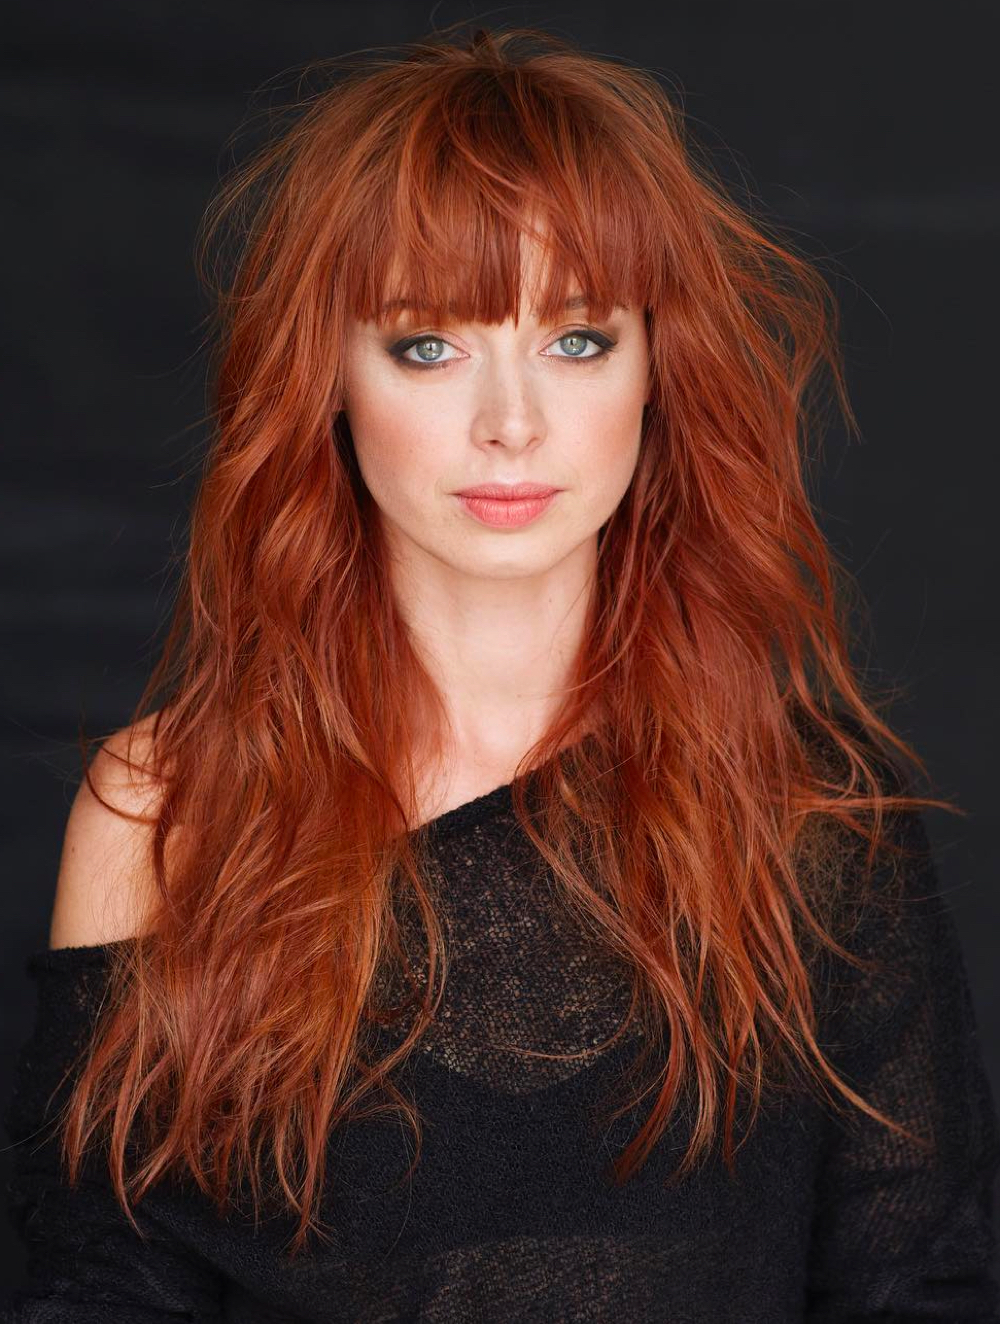 Most Current Side Swept Curls And Draped Bangs Hairstyles With Long Shag Haircuts: 36 Examples For  (View 11 of 20)